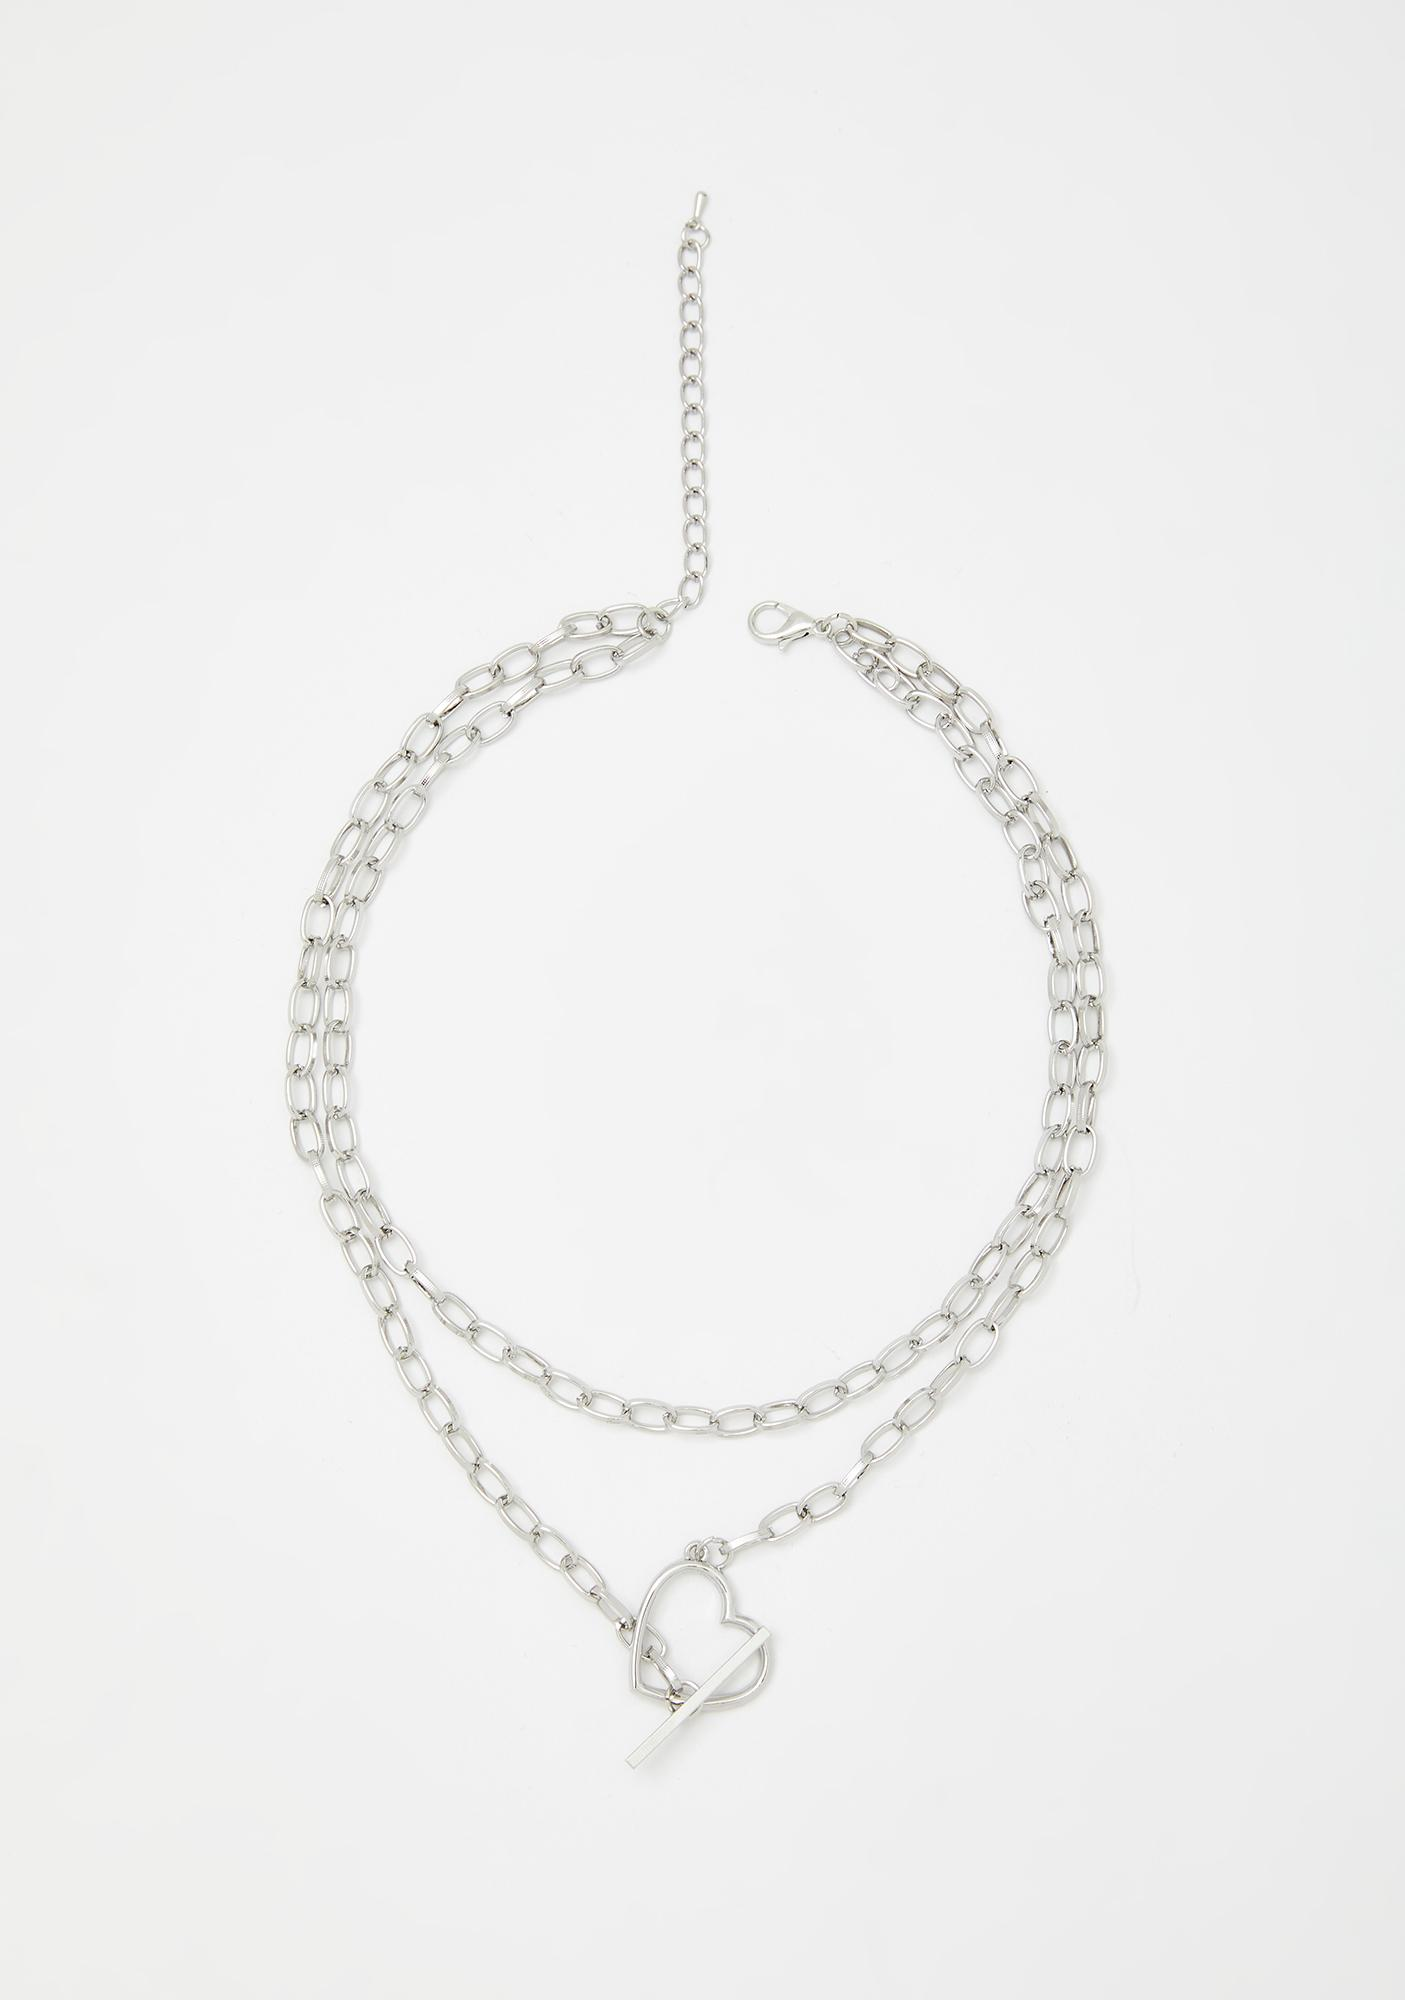 Steal My Heart Toggle Necklace